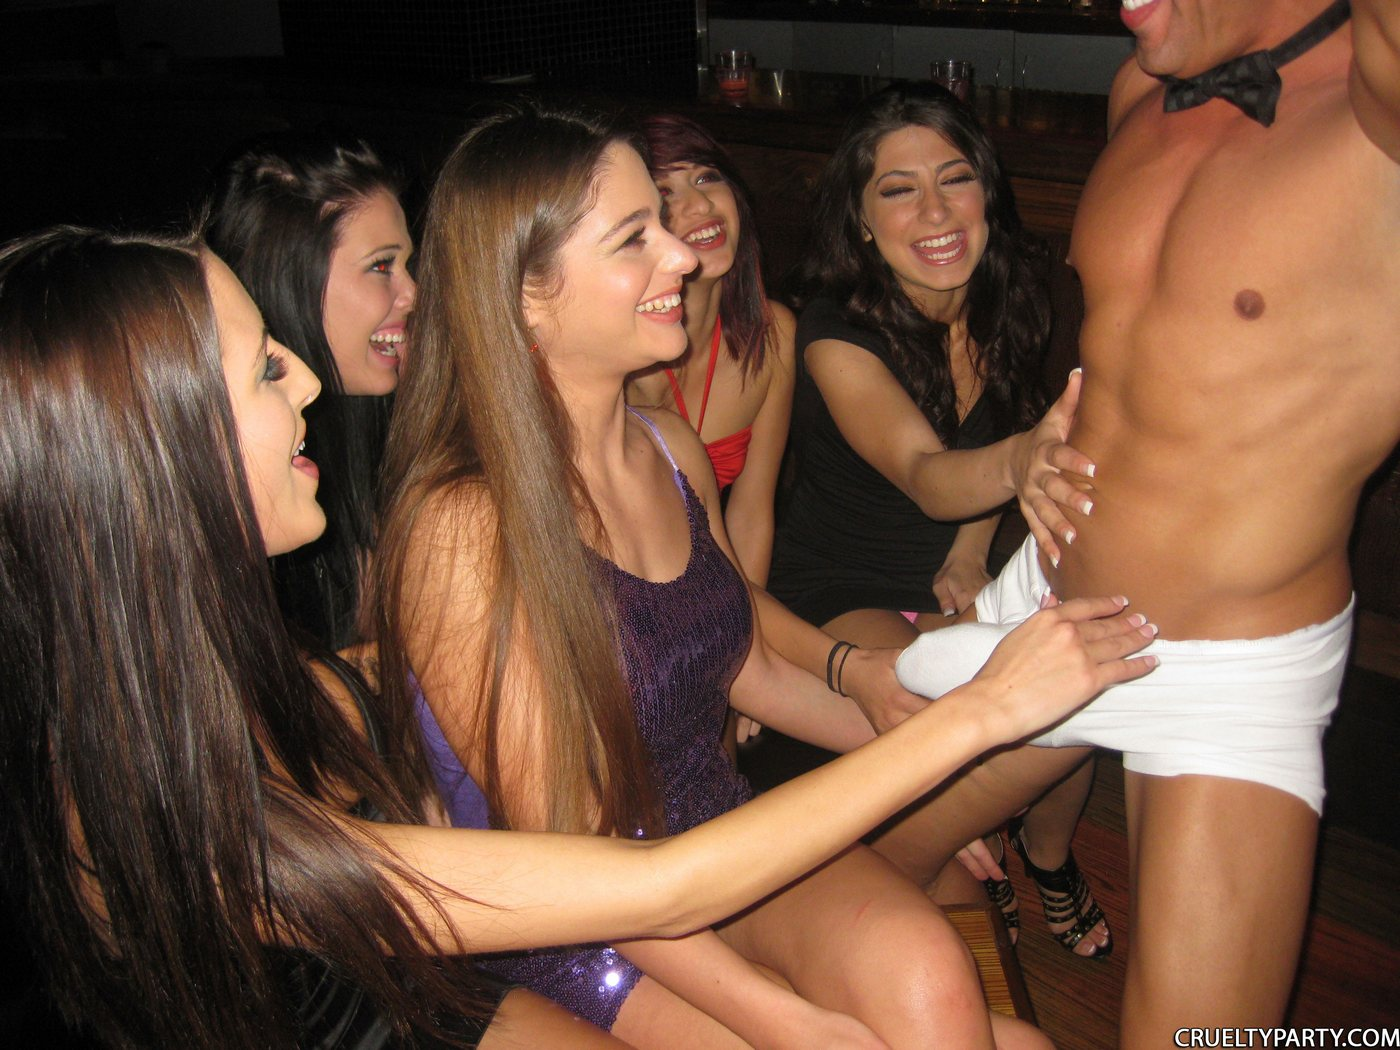 Amateur college party girls handjob think, that